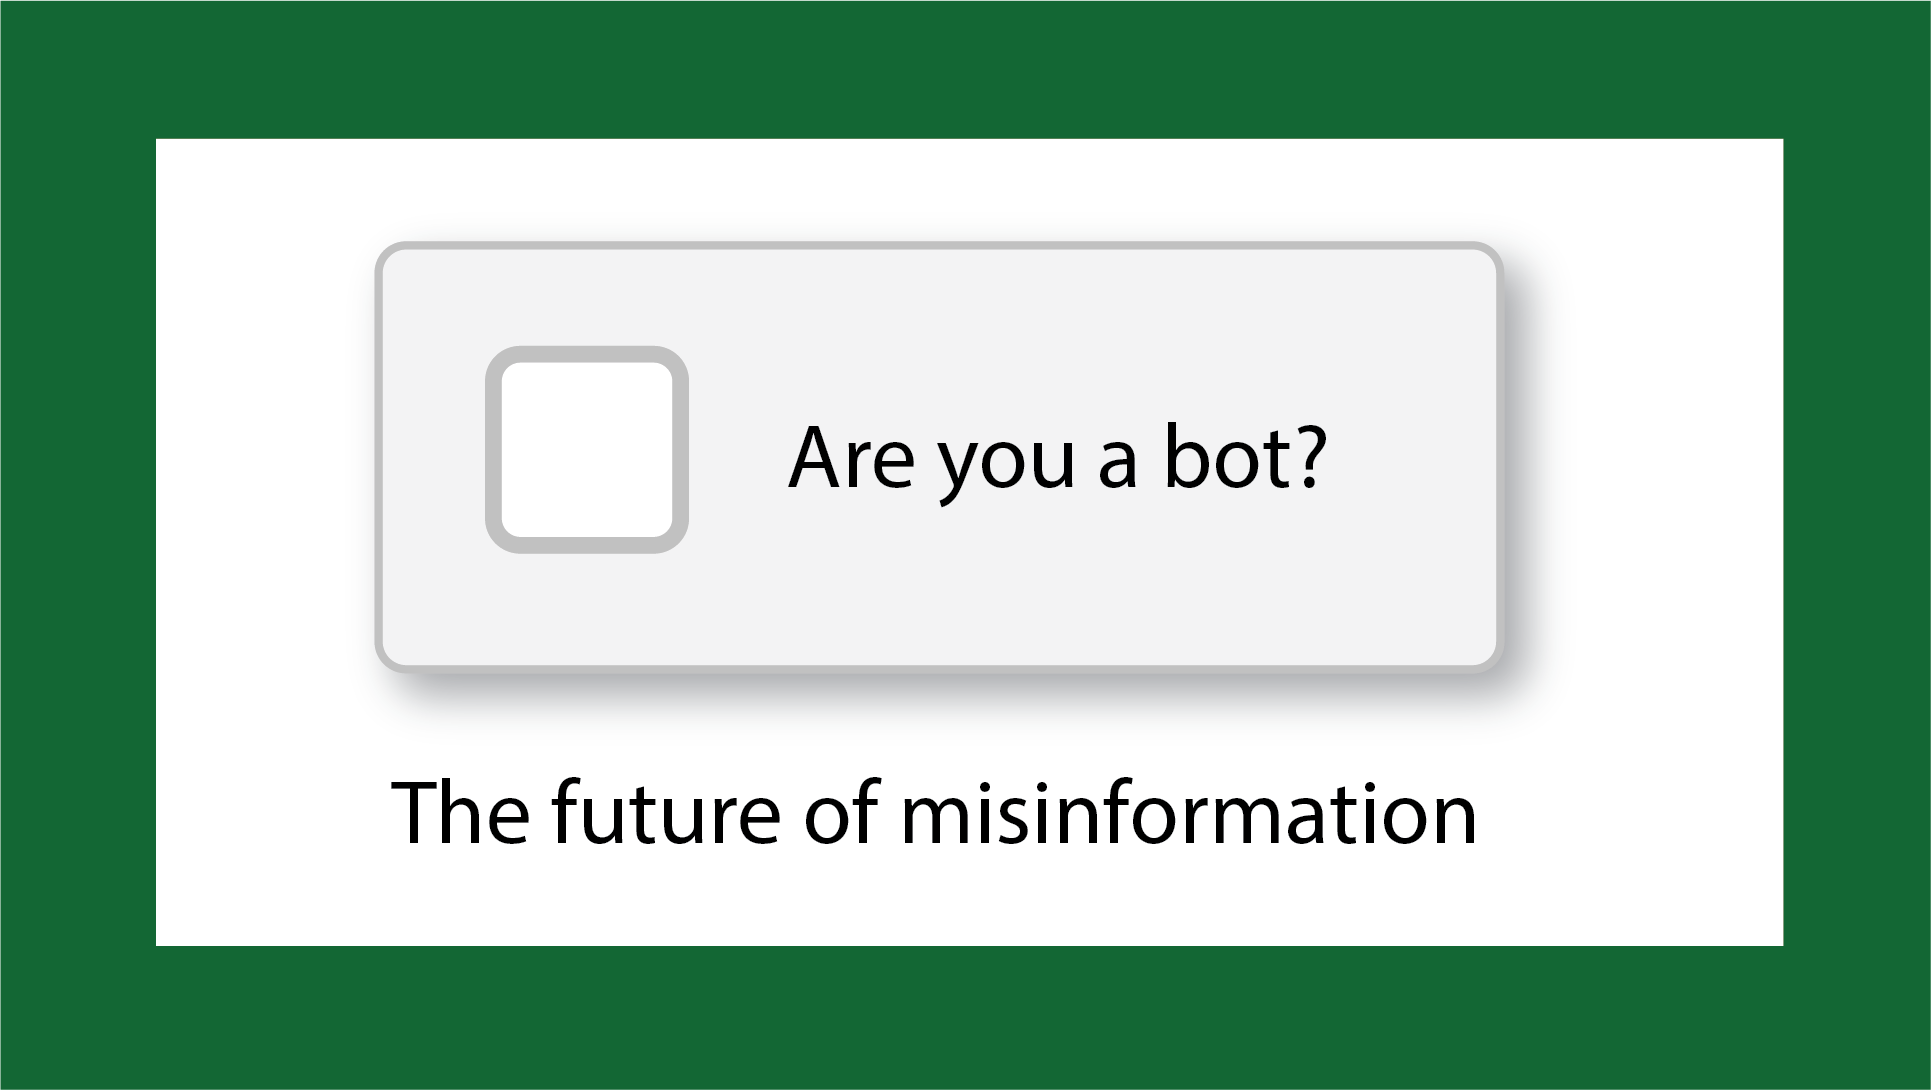 Are you a bot? The future of misinformation